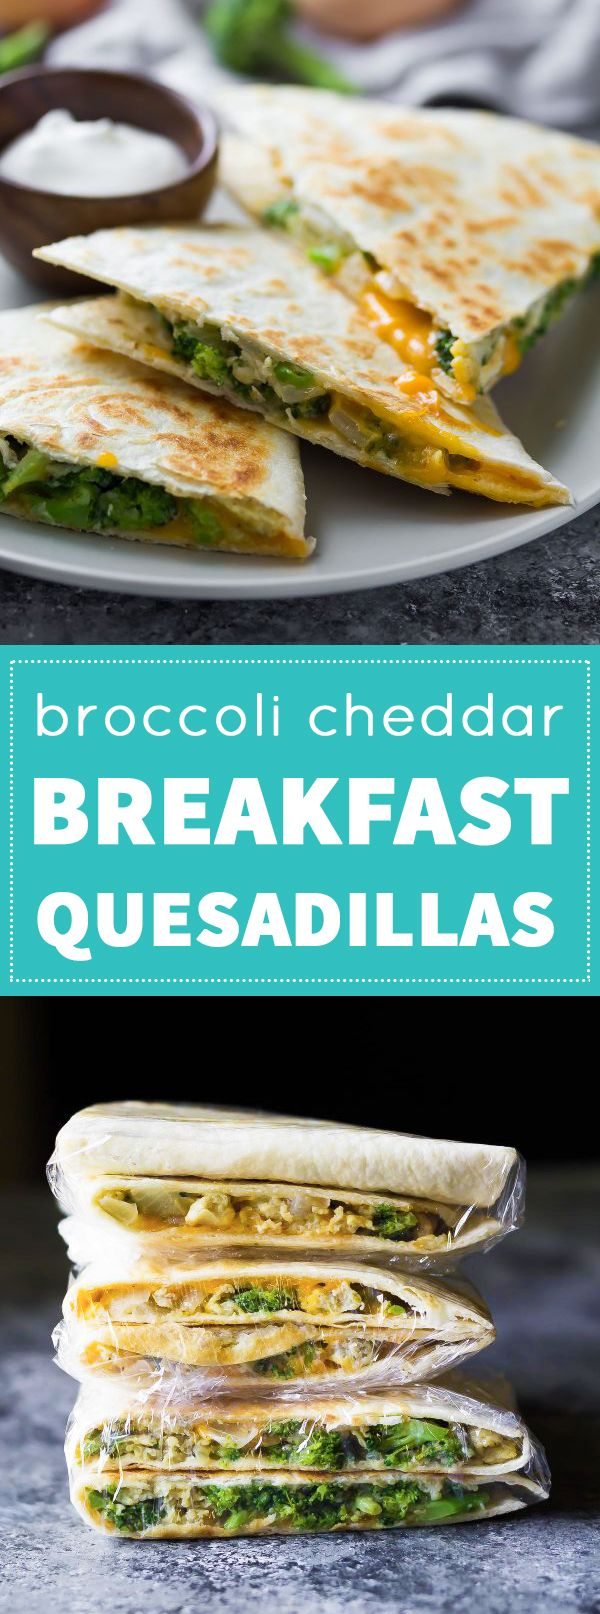 These freezer friendly broccoli cheddar breakfast quesadillas are going to have you leaping out of bed in the morning!